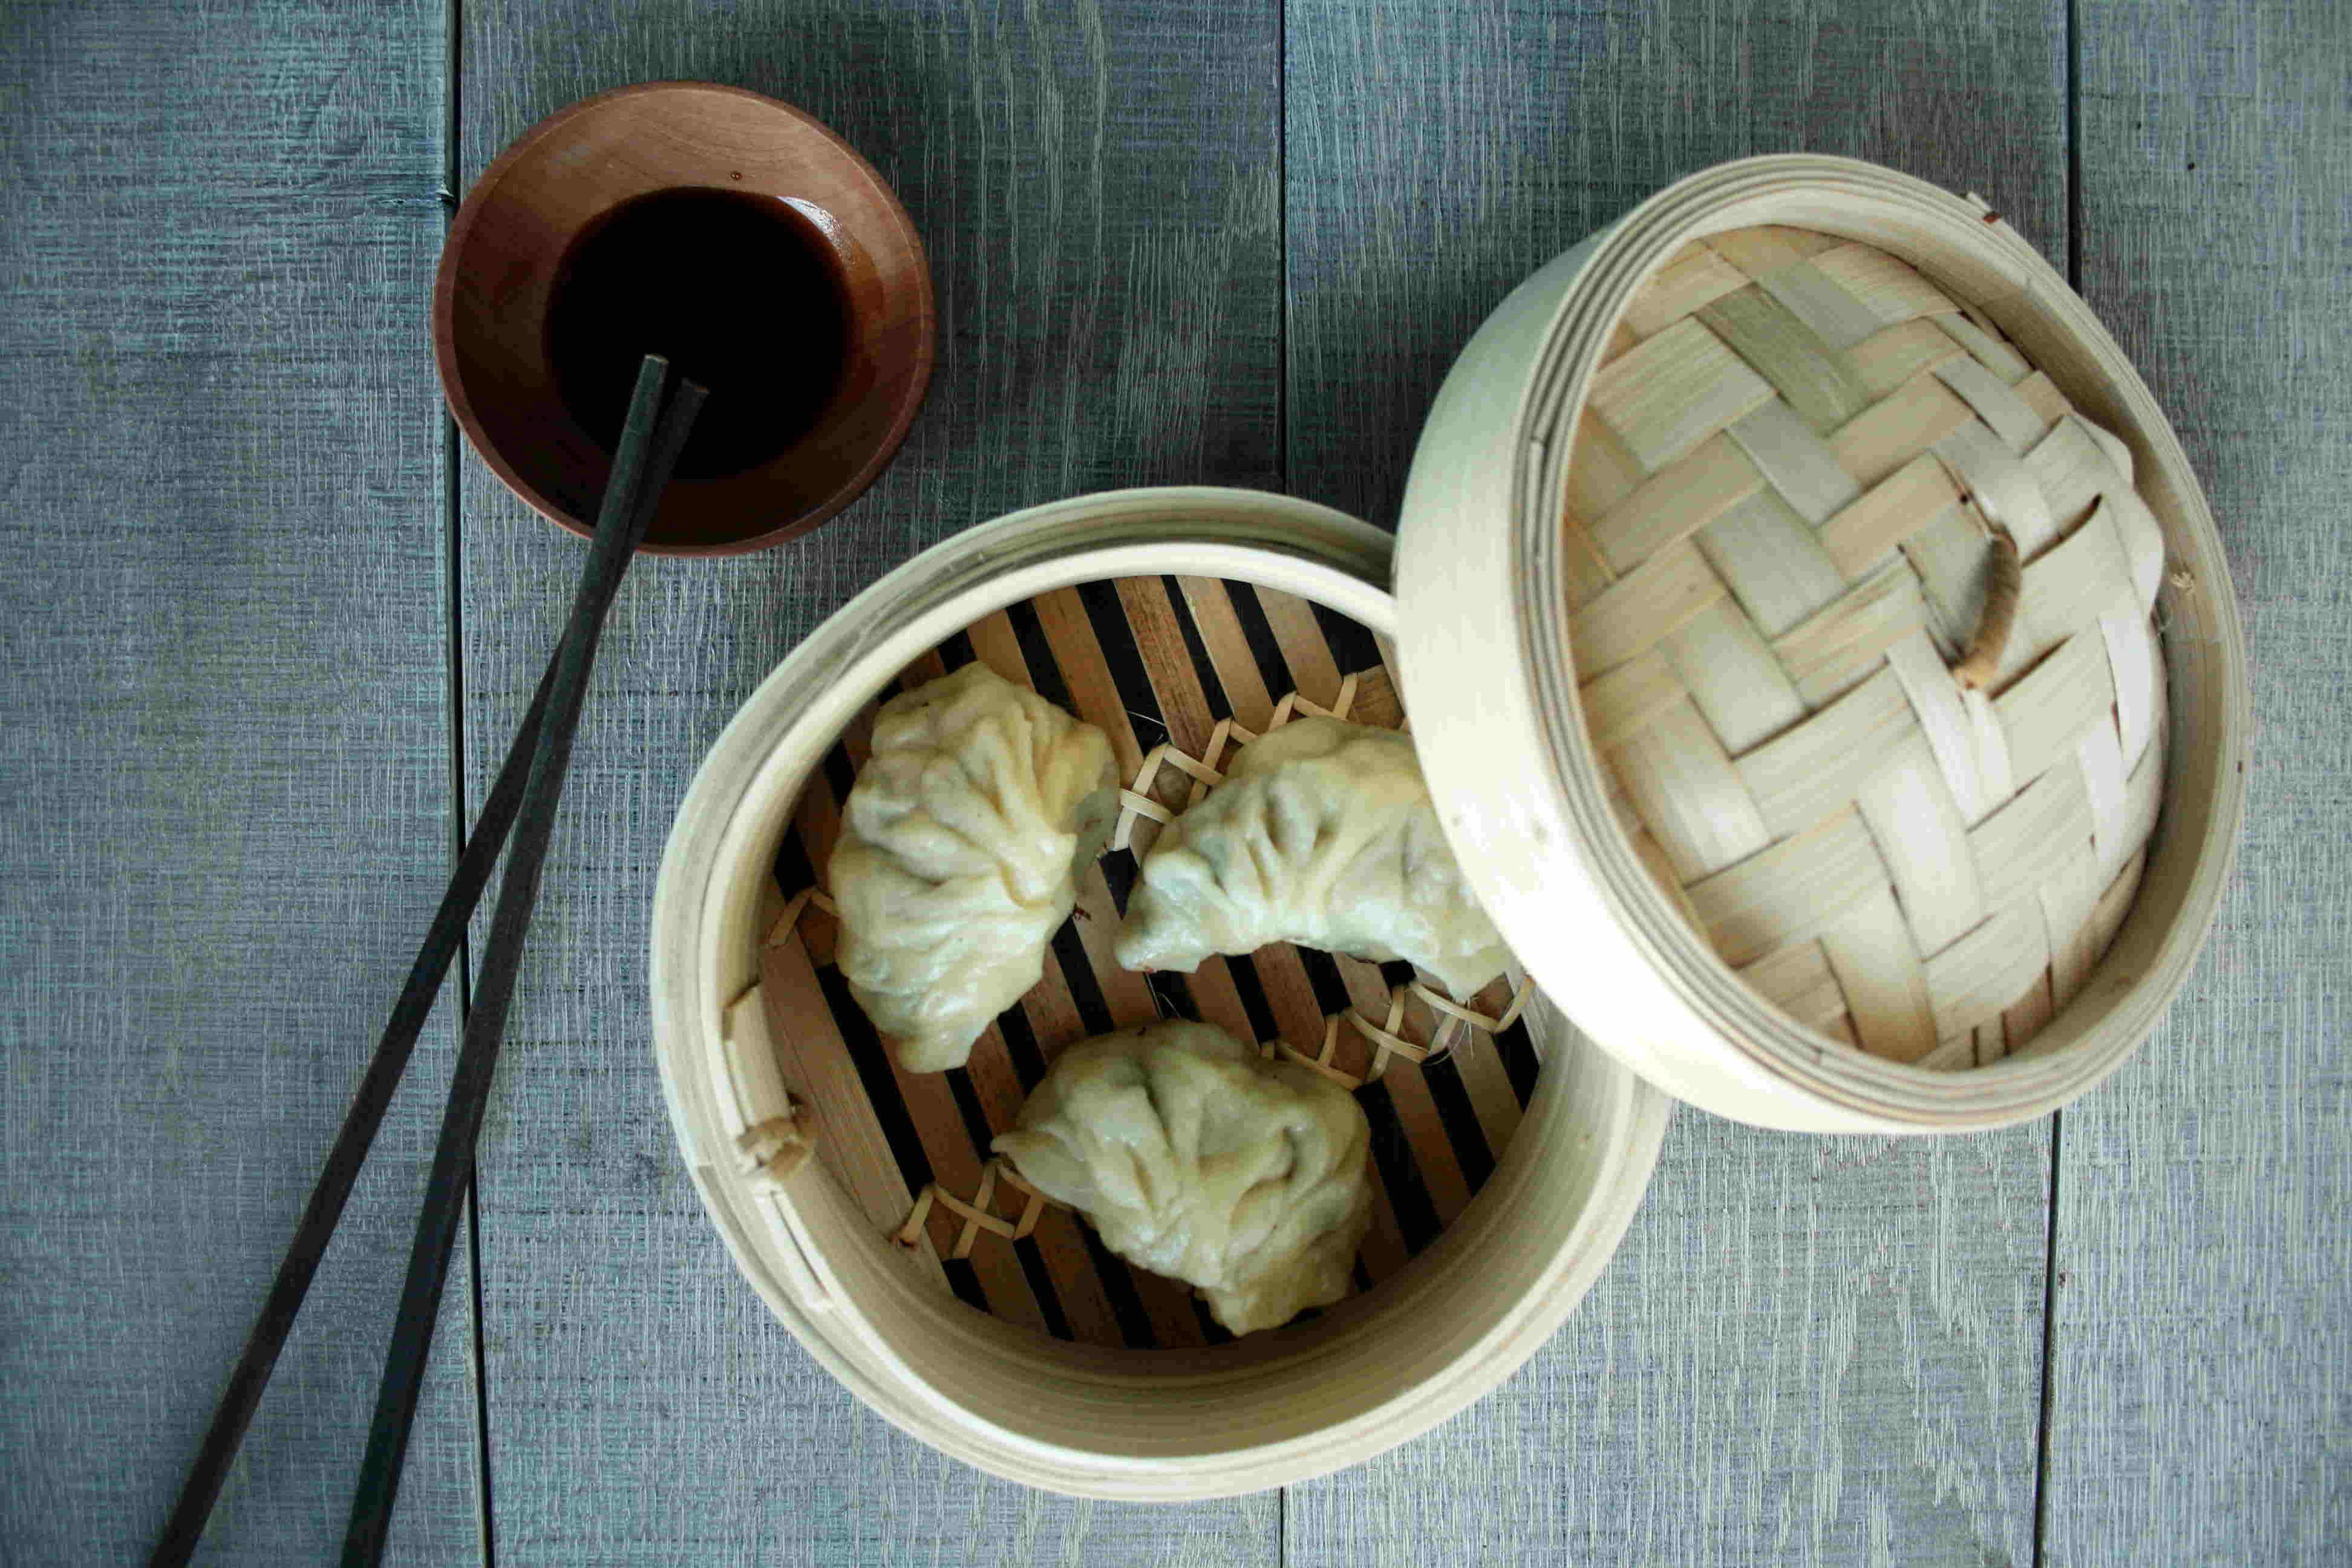 Steamed cooking jiaozi